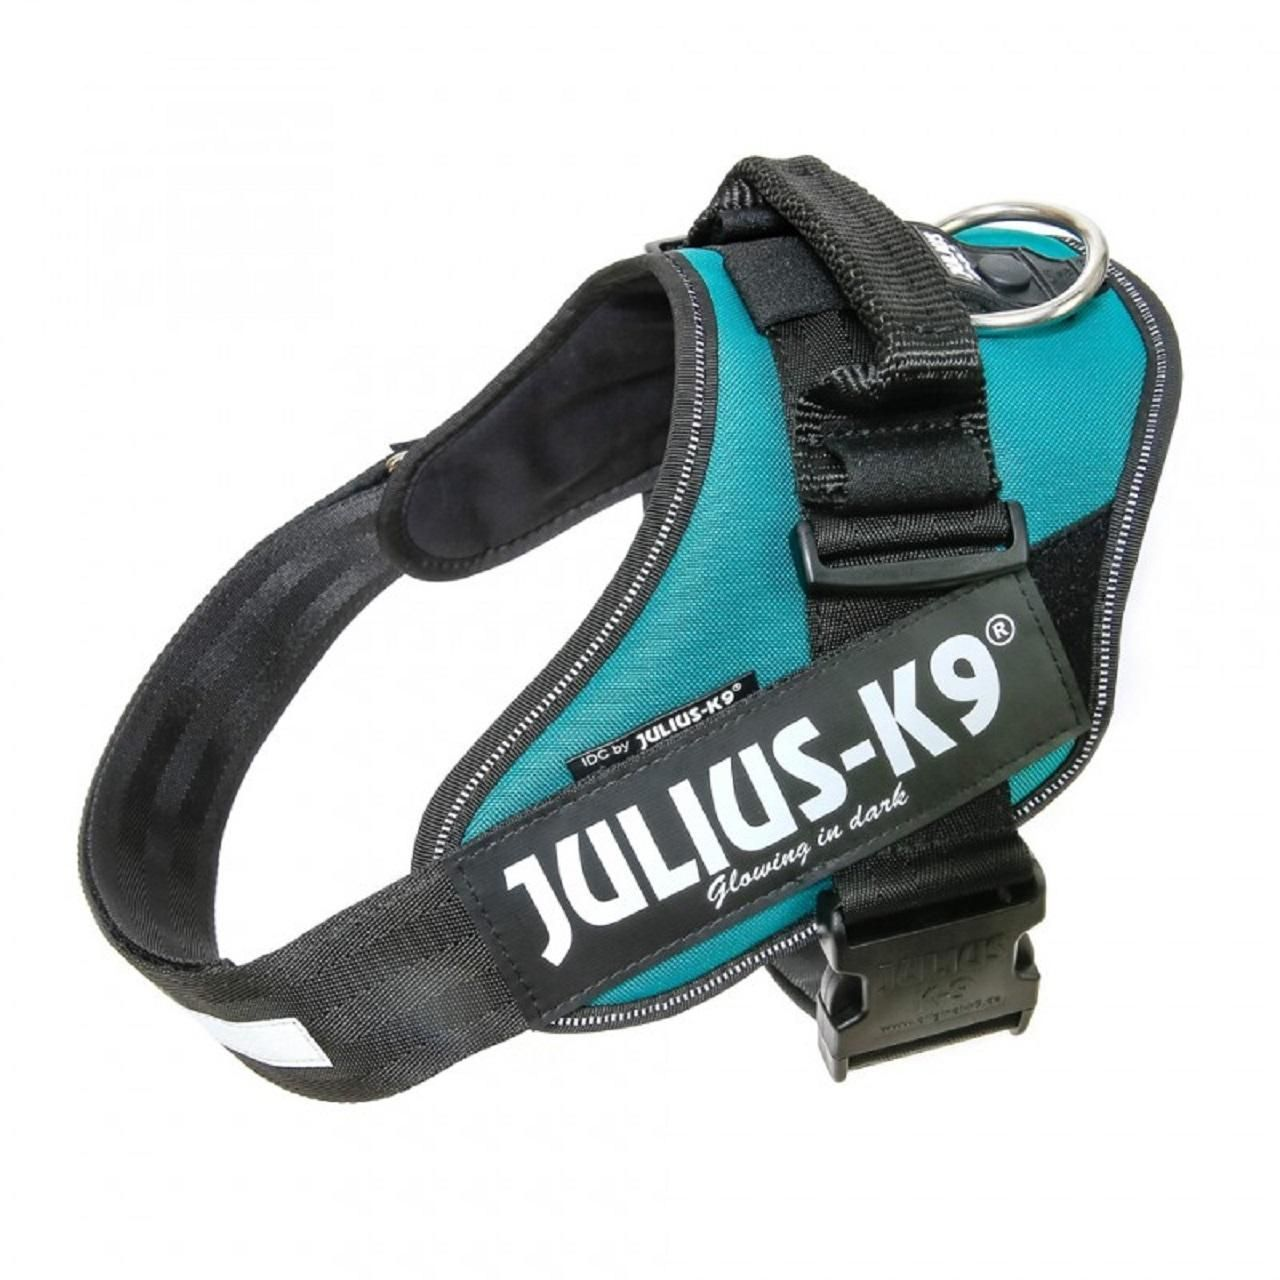 Julius K9 IDC Powerharness Harnais